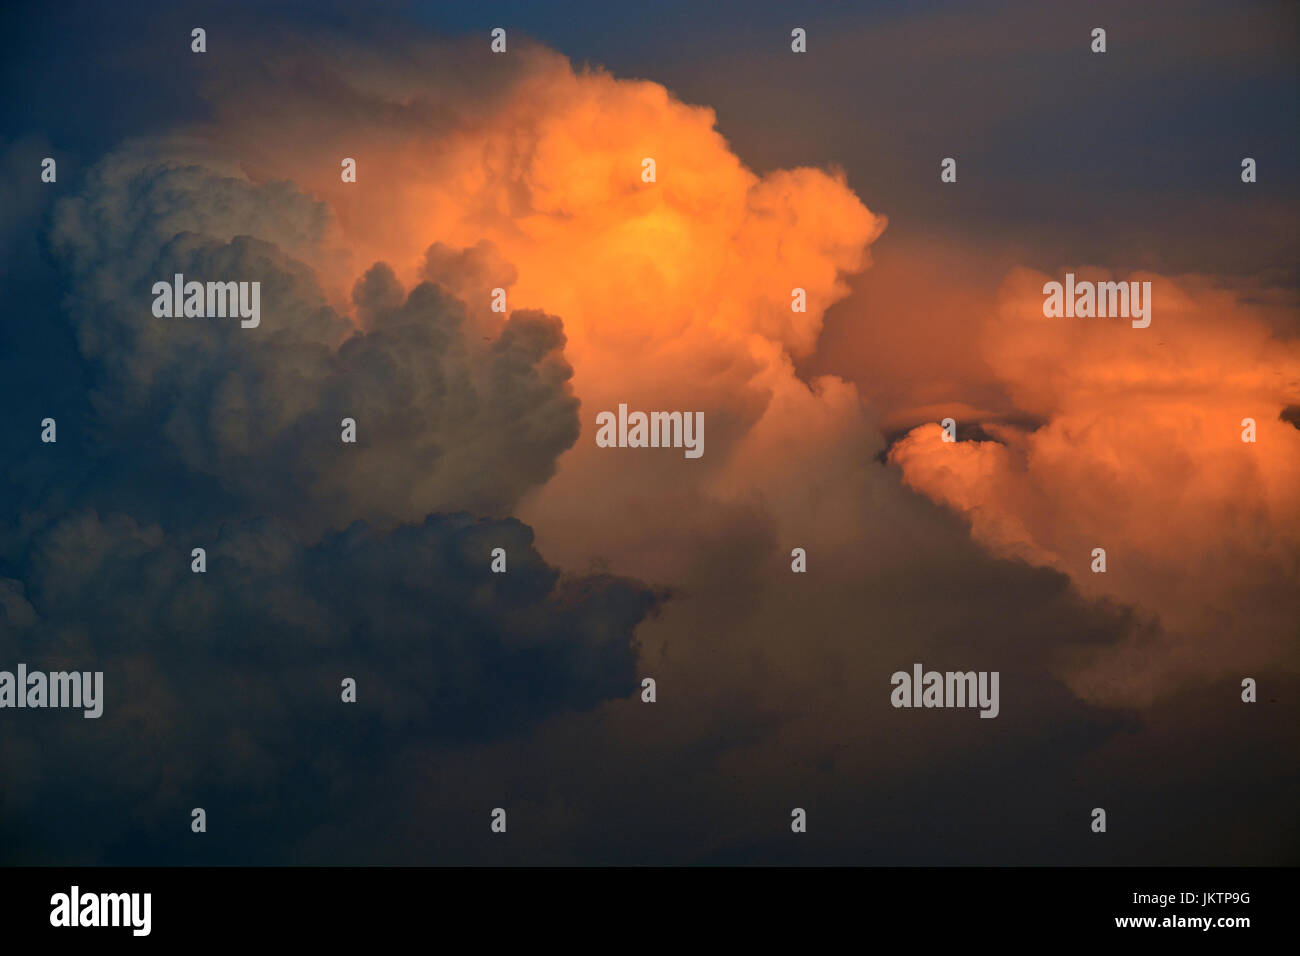 Distant thunderheads over Dallas Texas have an orange glow due to the setting sun. - Stock Image